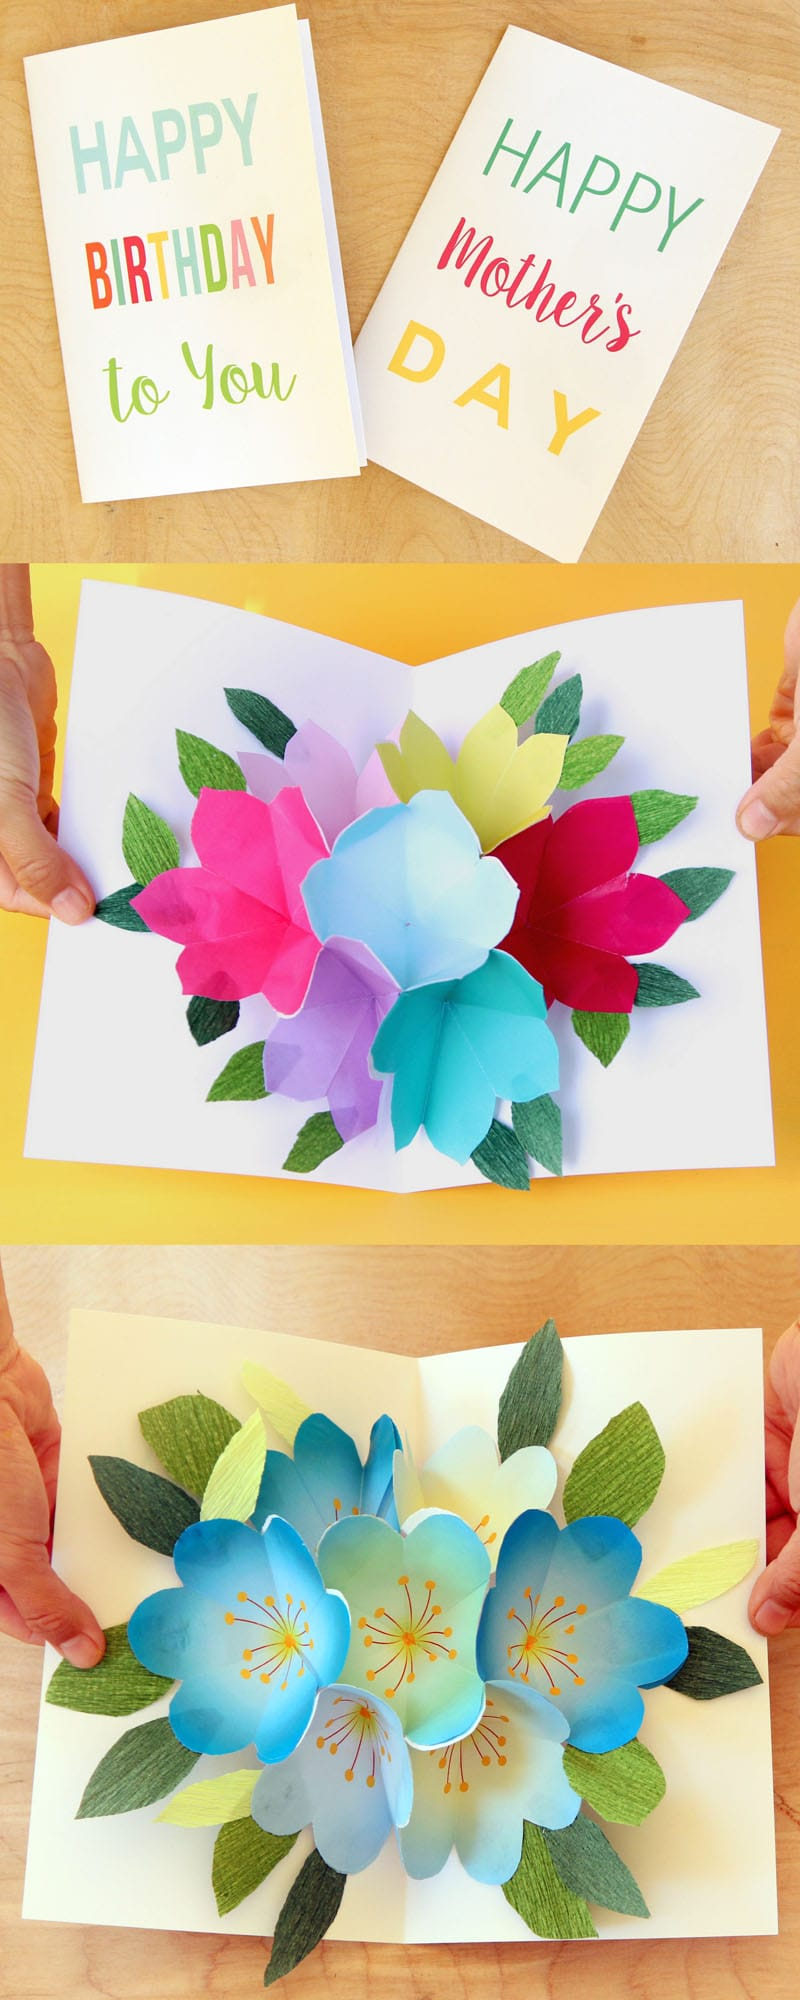 Free printable happy birthday card with pop up bouquet a piece you can make this easy and free printable birthday card in less than an hour oh and the best part a big bouquet pops right out when your loved one opens bookmarktalkfo Gallery